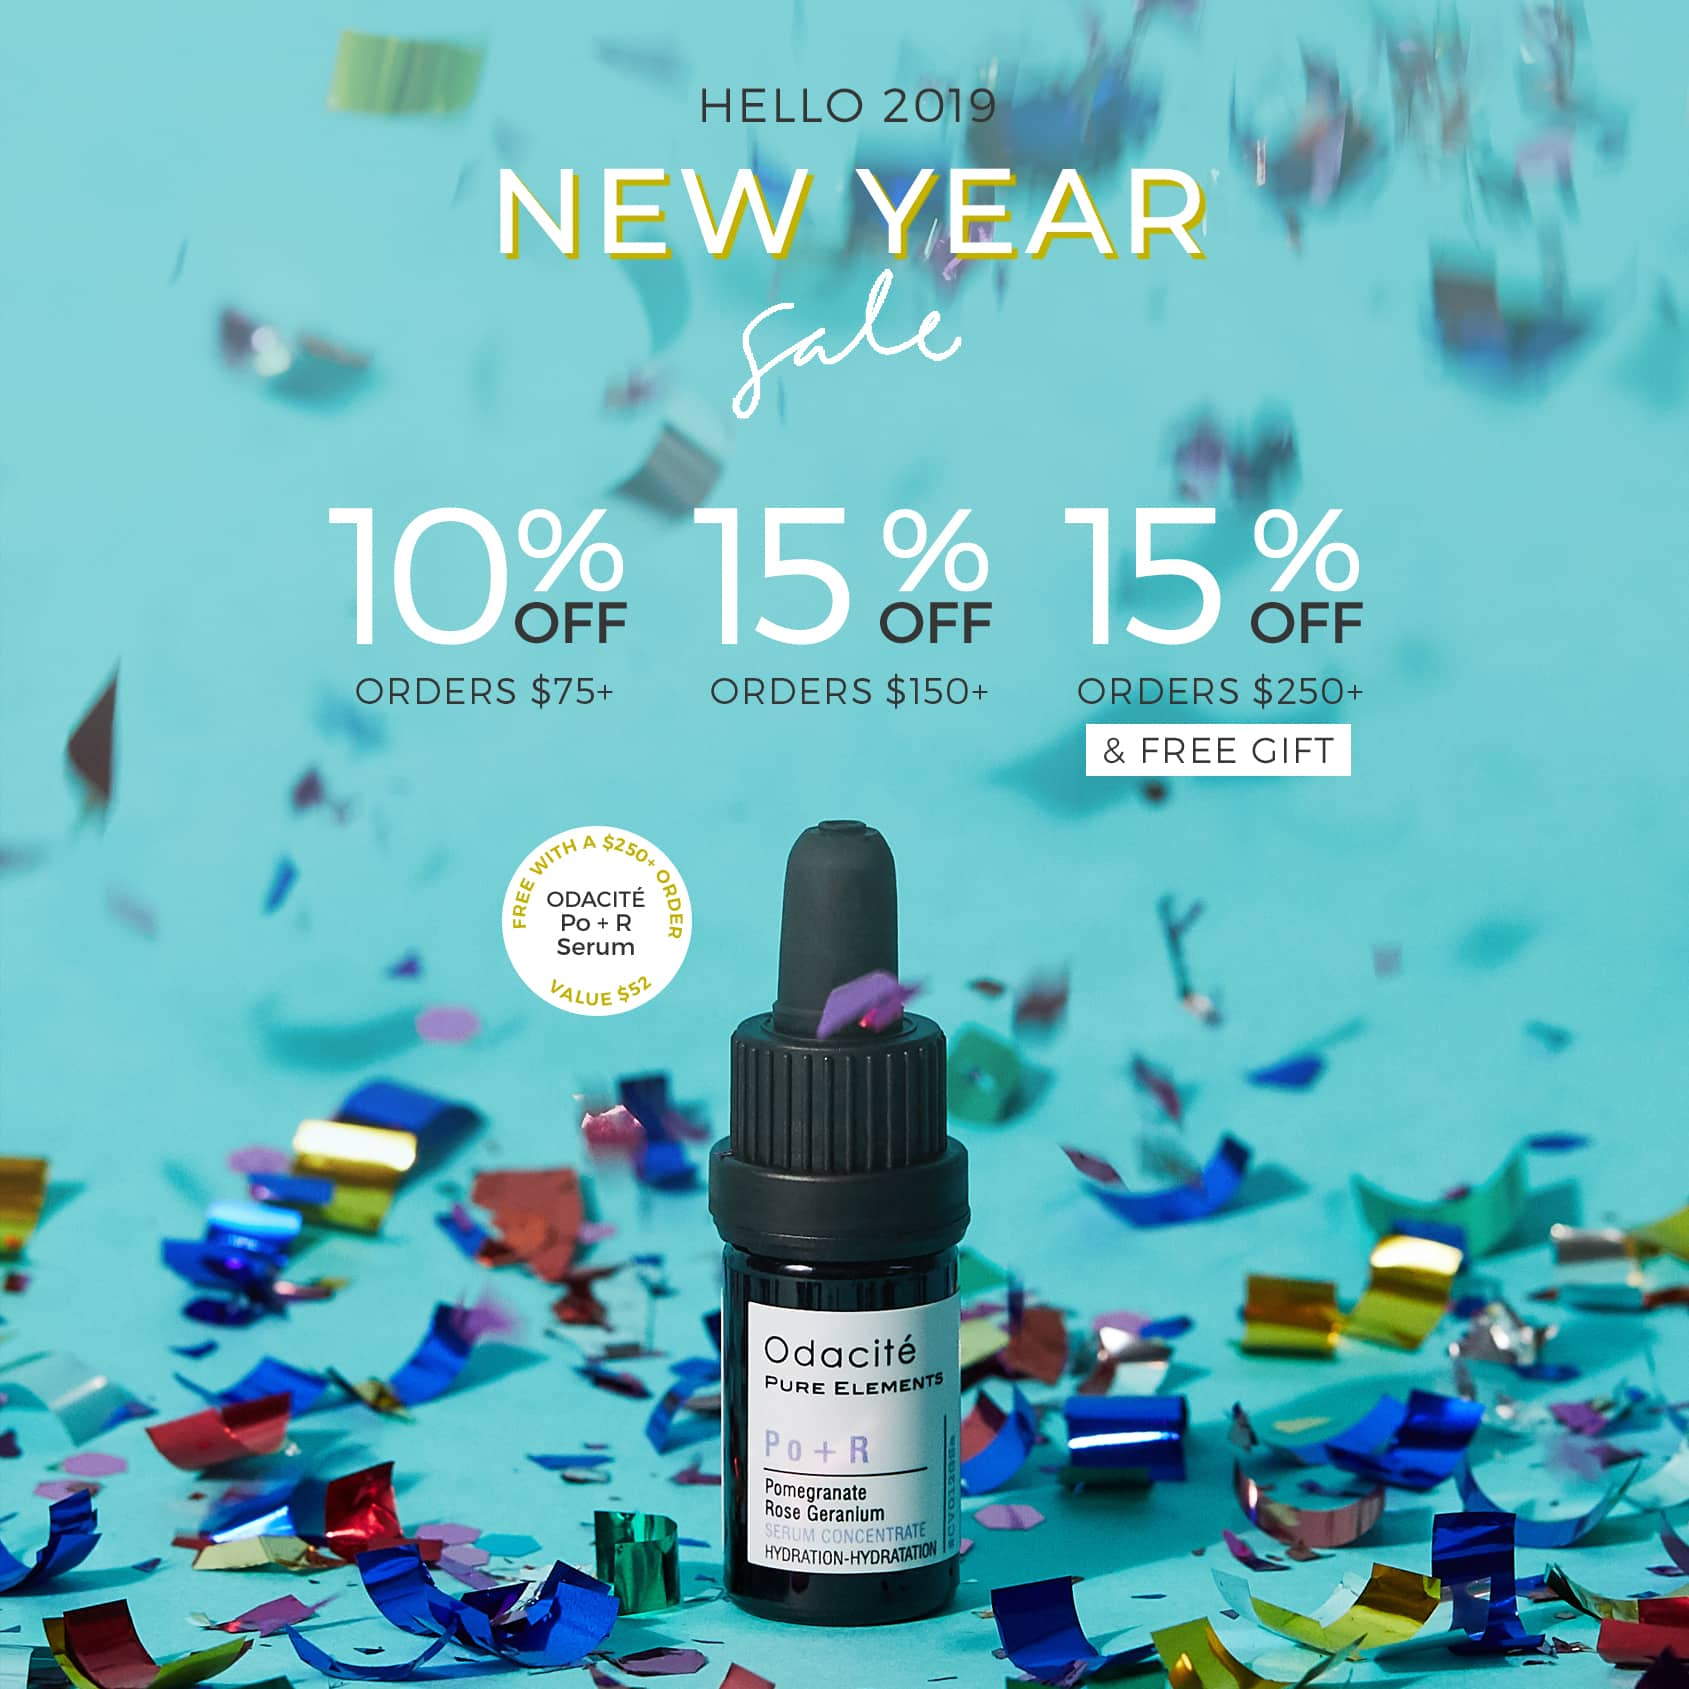 The Detox Market New Year Sale: Get Up To 15% Off + Bonus Item!